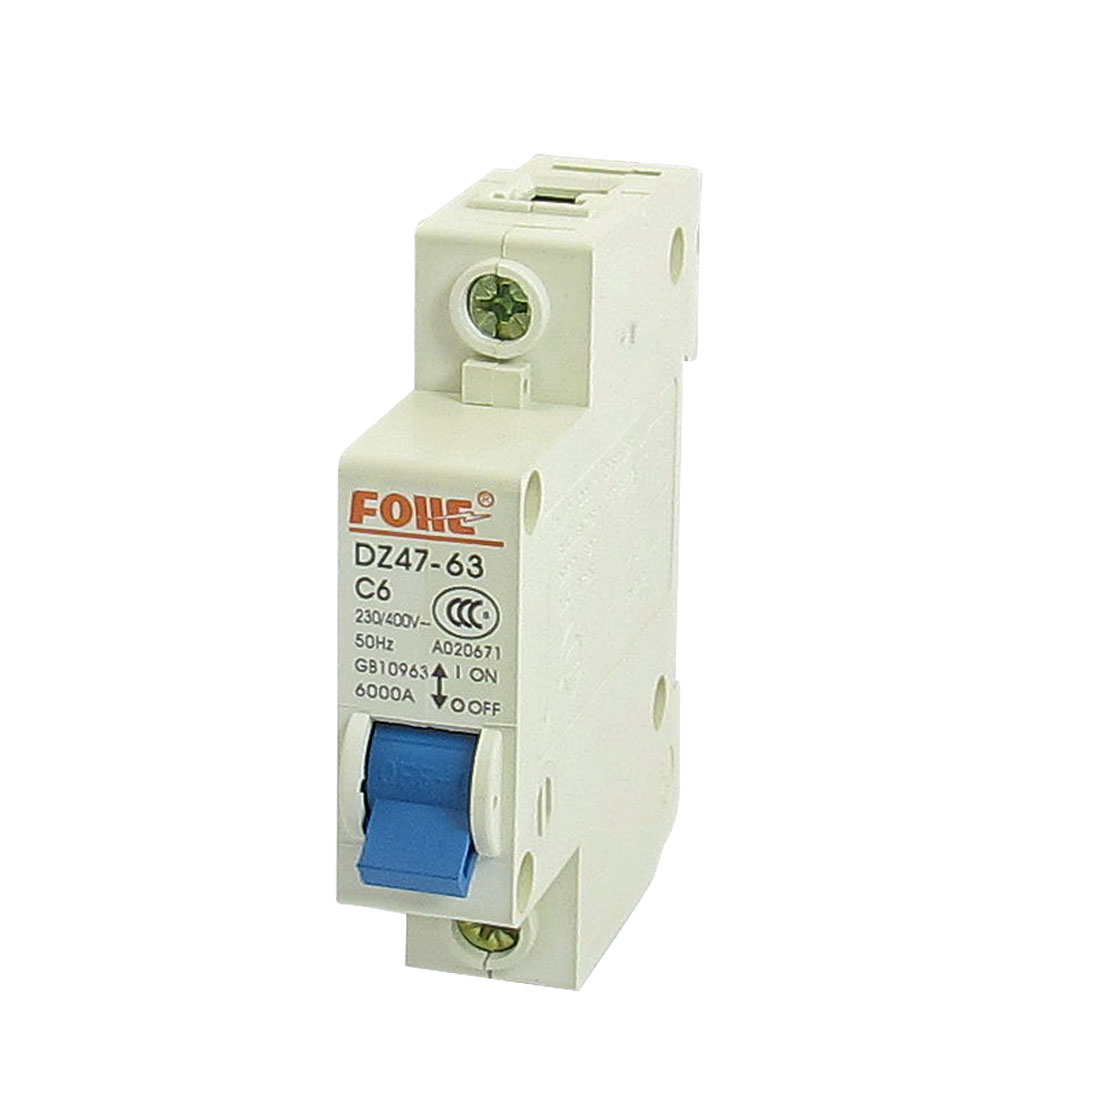 AC 230V 400V 6A 1 Pole 1P On/Off Switch Miniature Circuit Breaker DZ47-63 C6